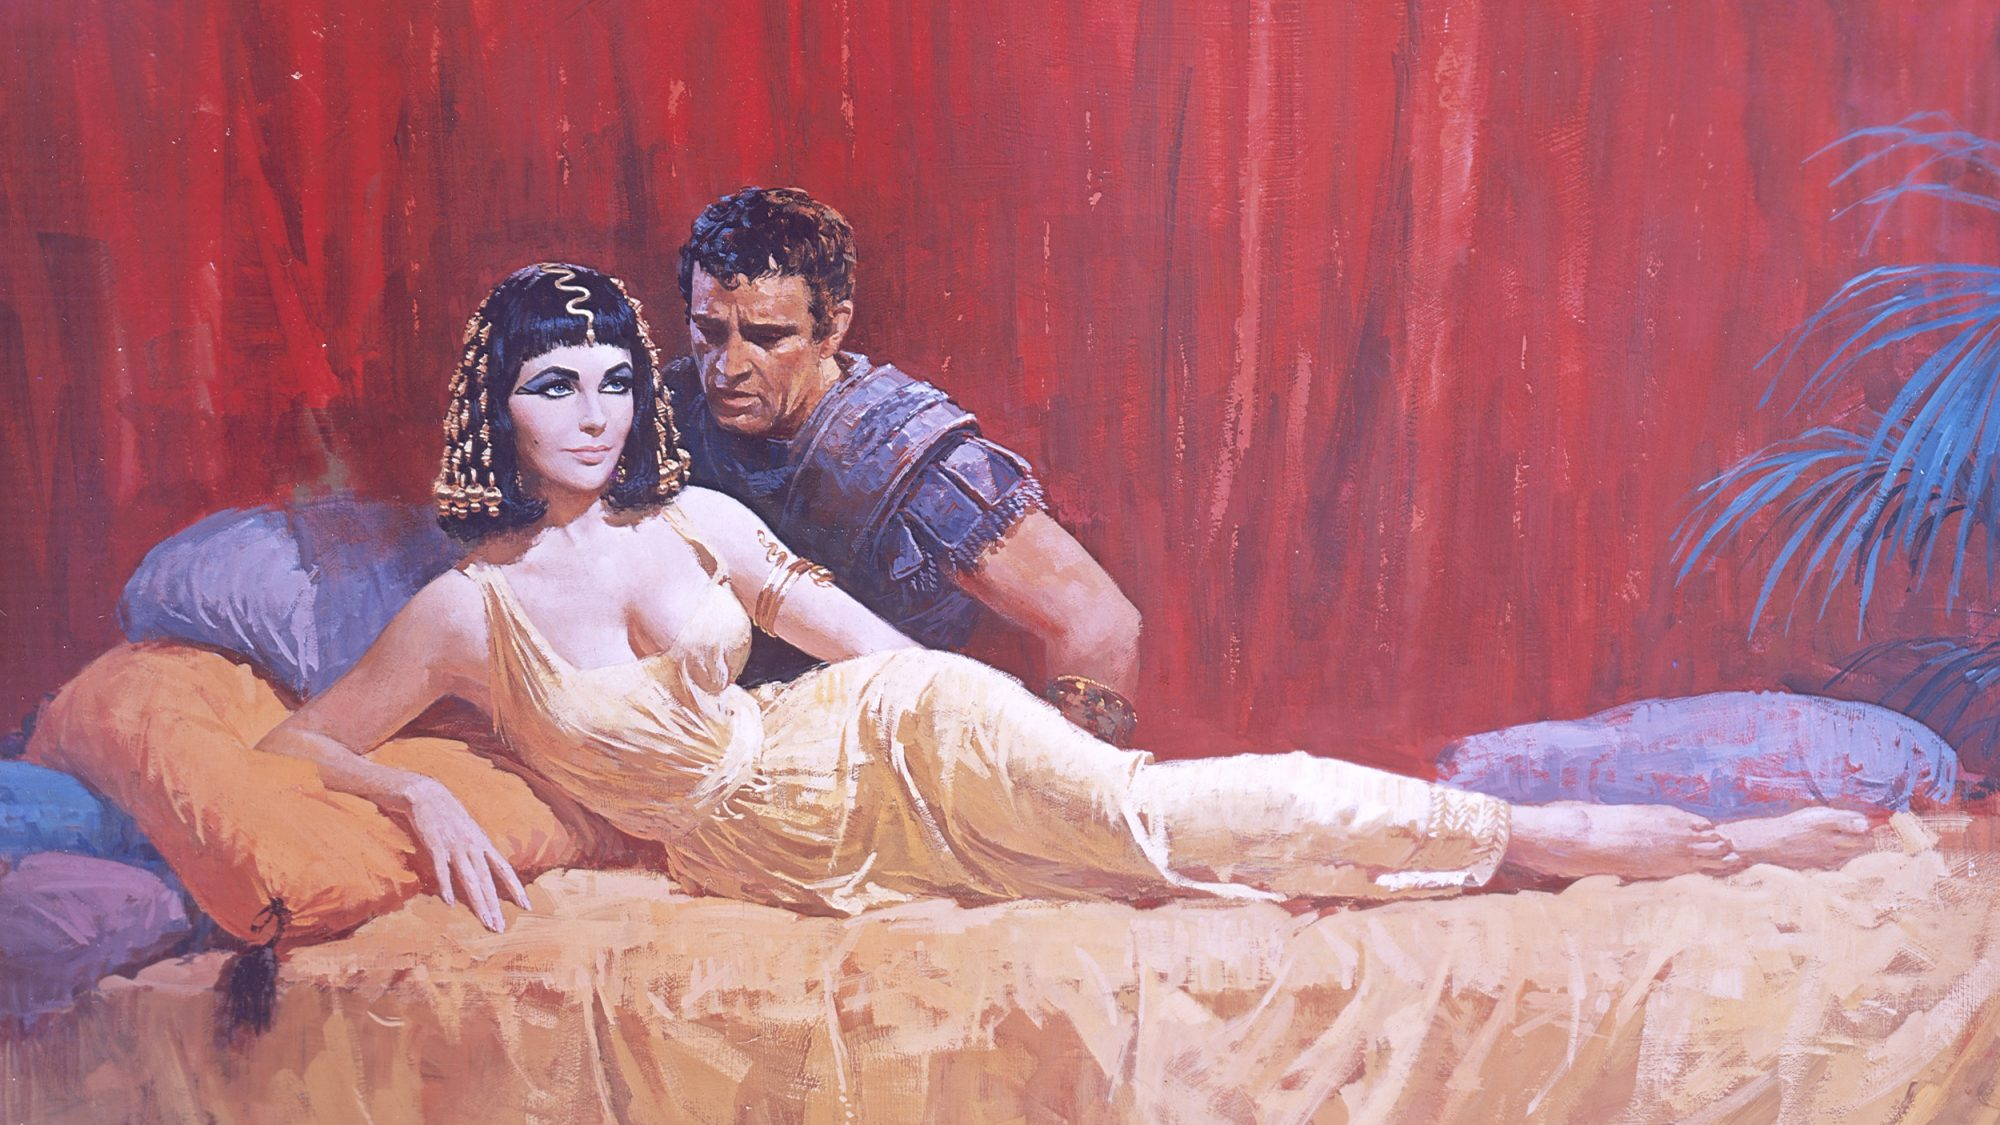 Cleopatra and Mark Anthony Drinking Games